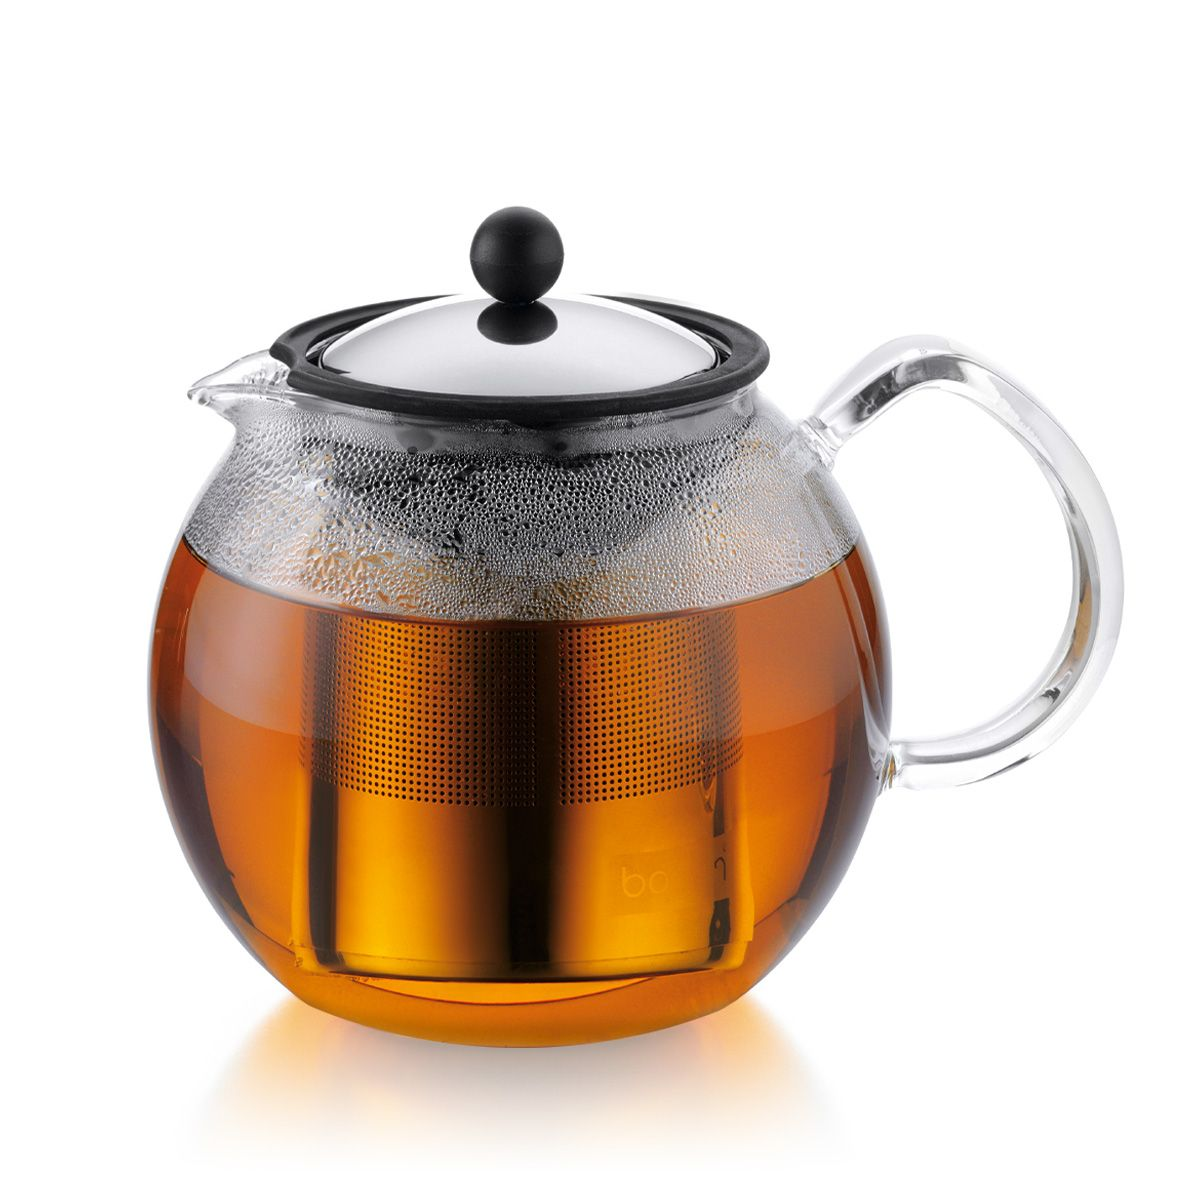 Teapot with Infuser Stainless Steel ASSAM 1.5 L - Bodum